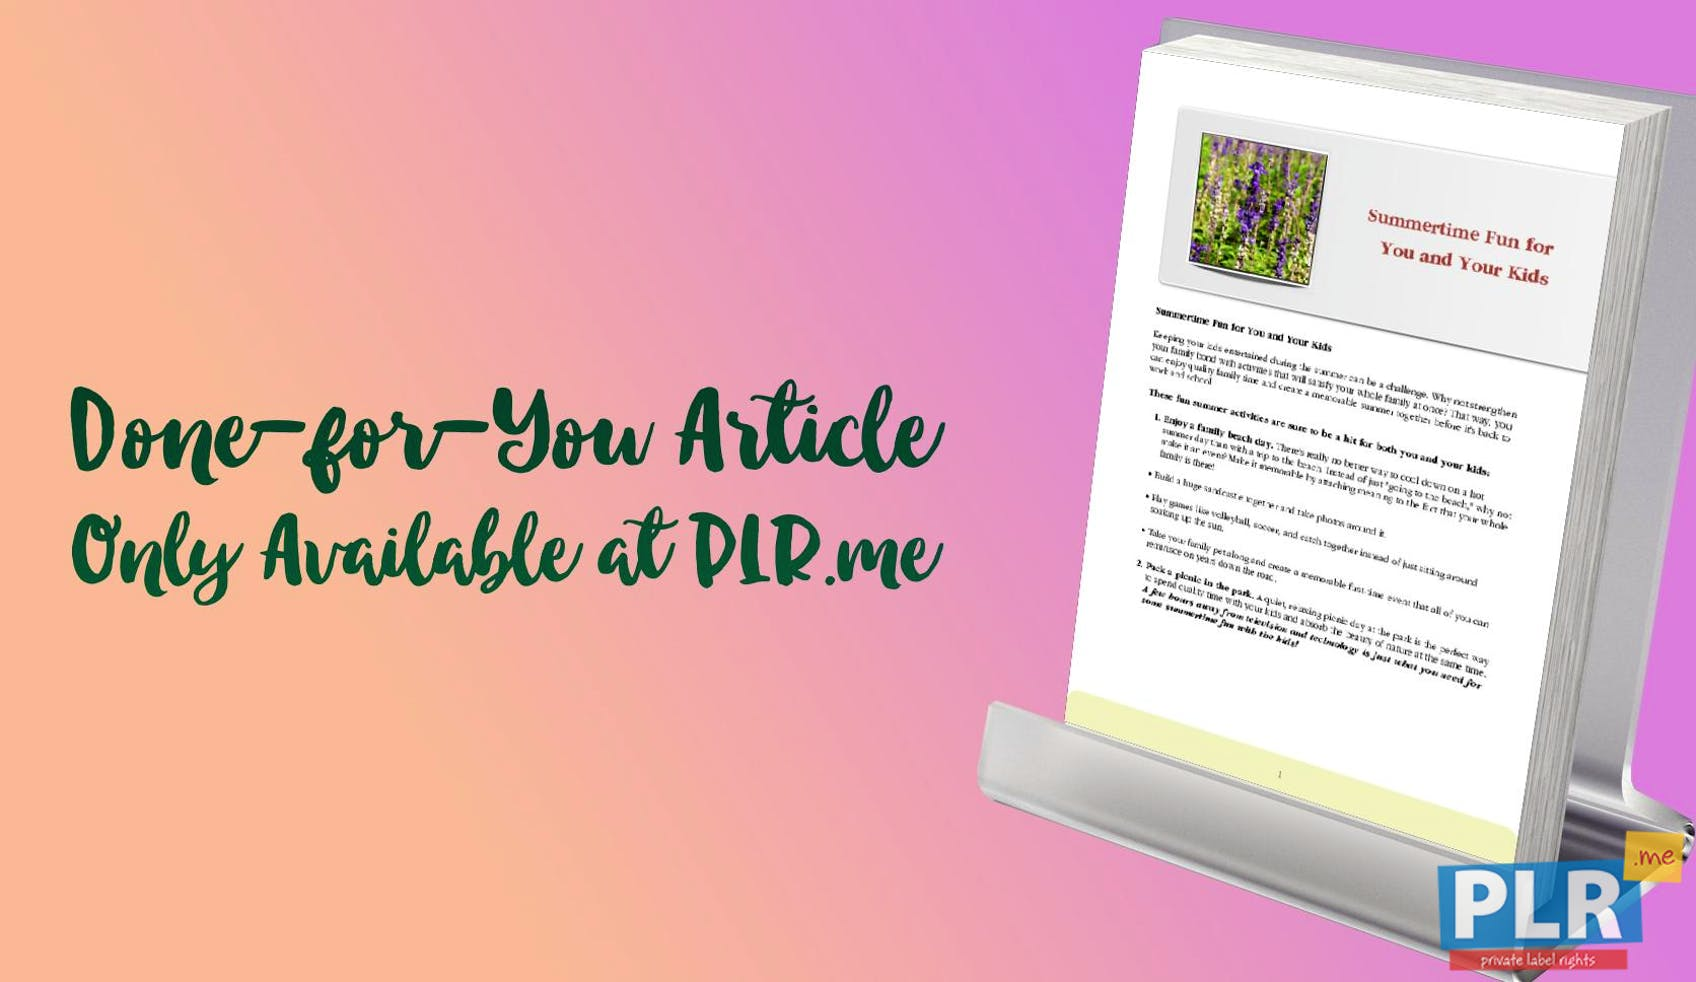 plr articles blog posts summertime fun for you and your kids